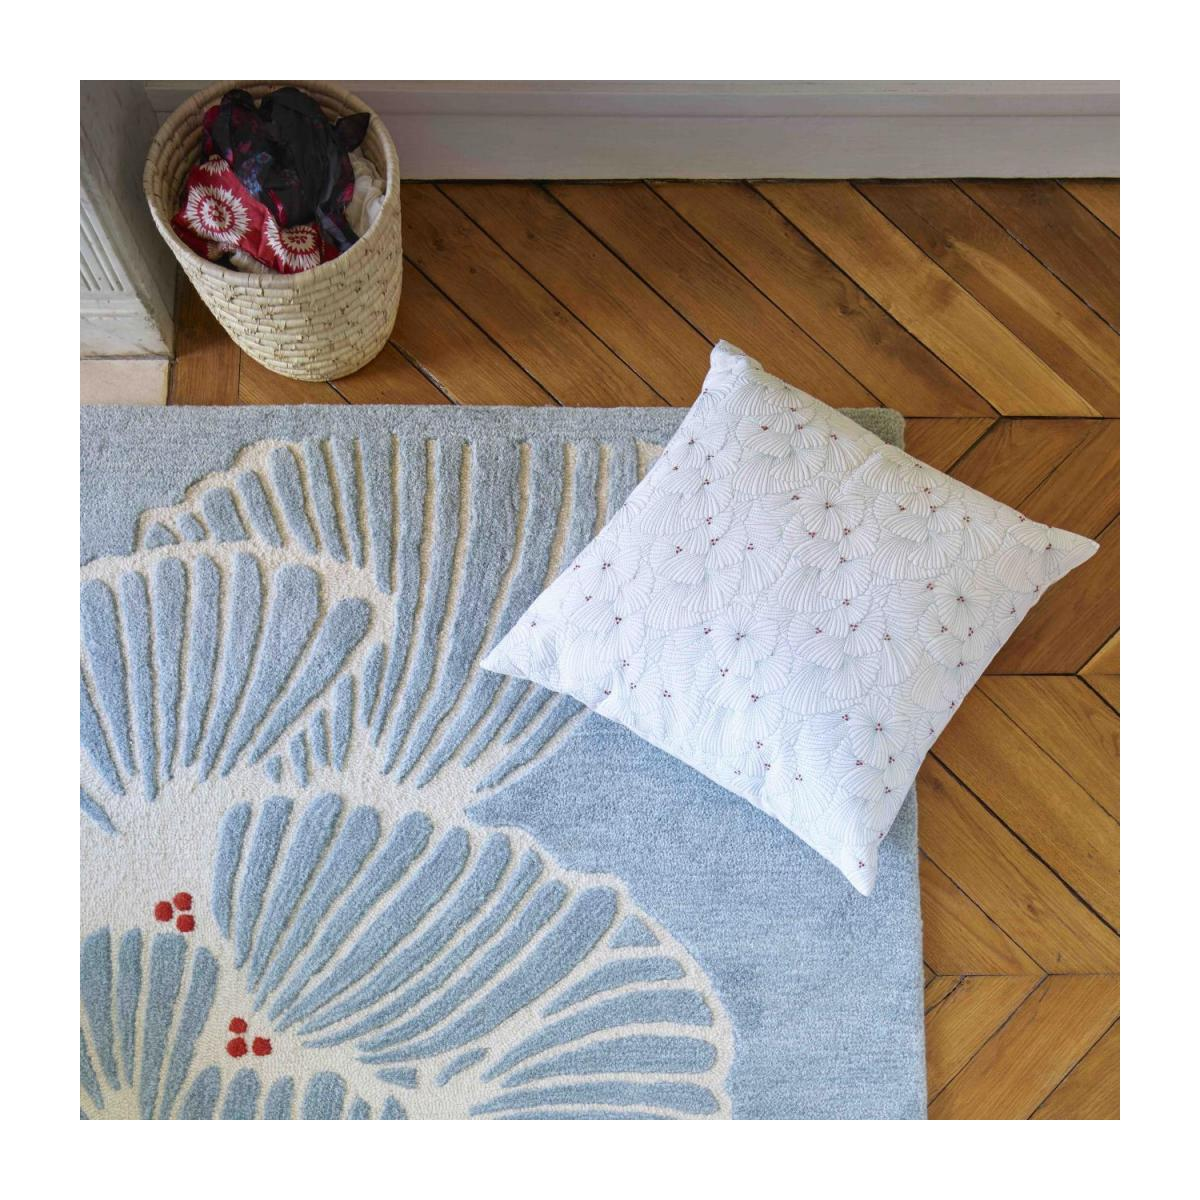 Embroidered quilted cushion made of cotton 50x50cm n°6